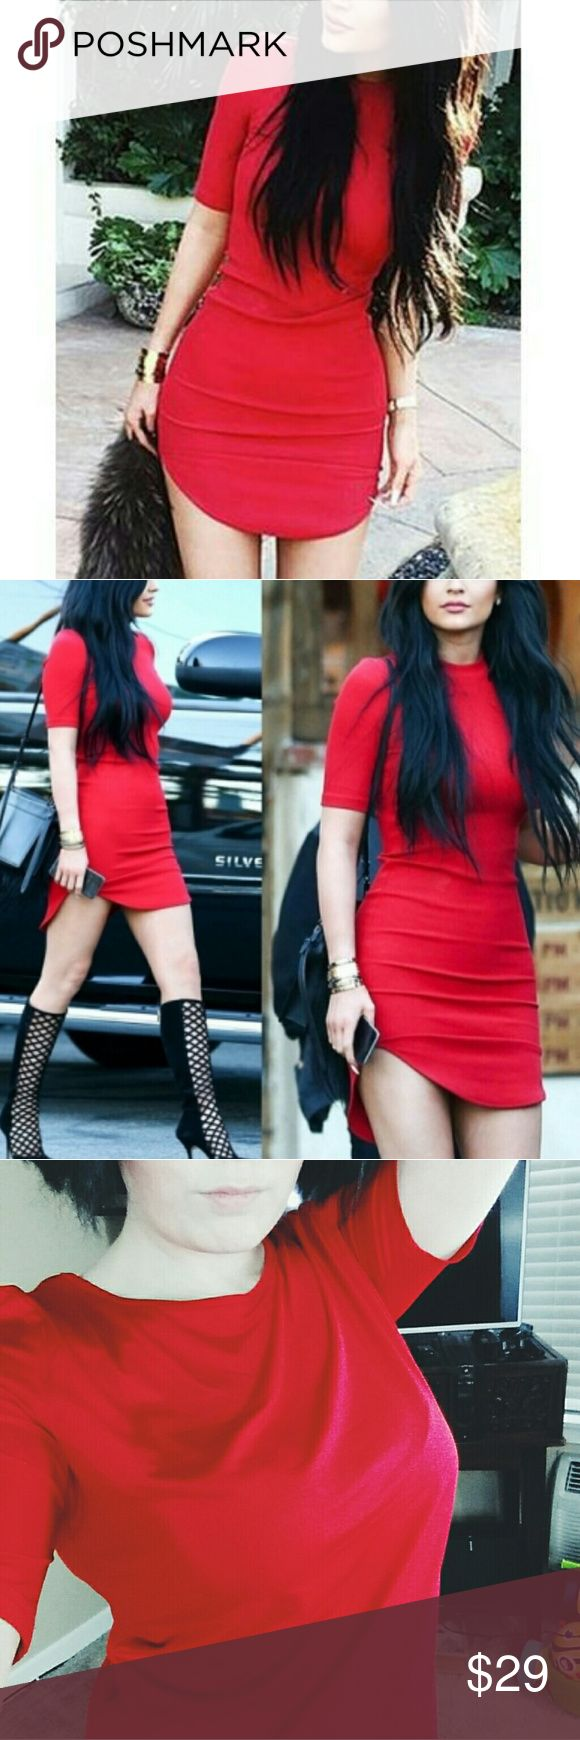 Red mini dress Gorgeous red mino dress. Love this piece and you will too! Item as shown in photos above! Dresses Mini